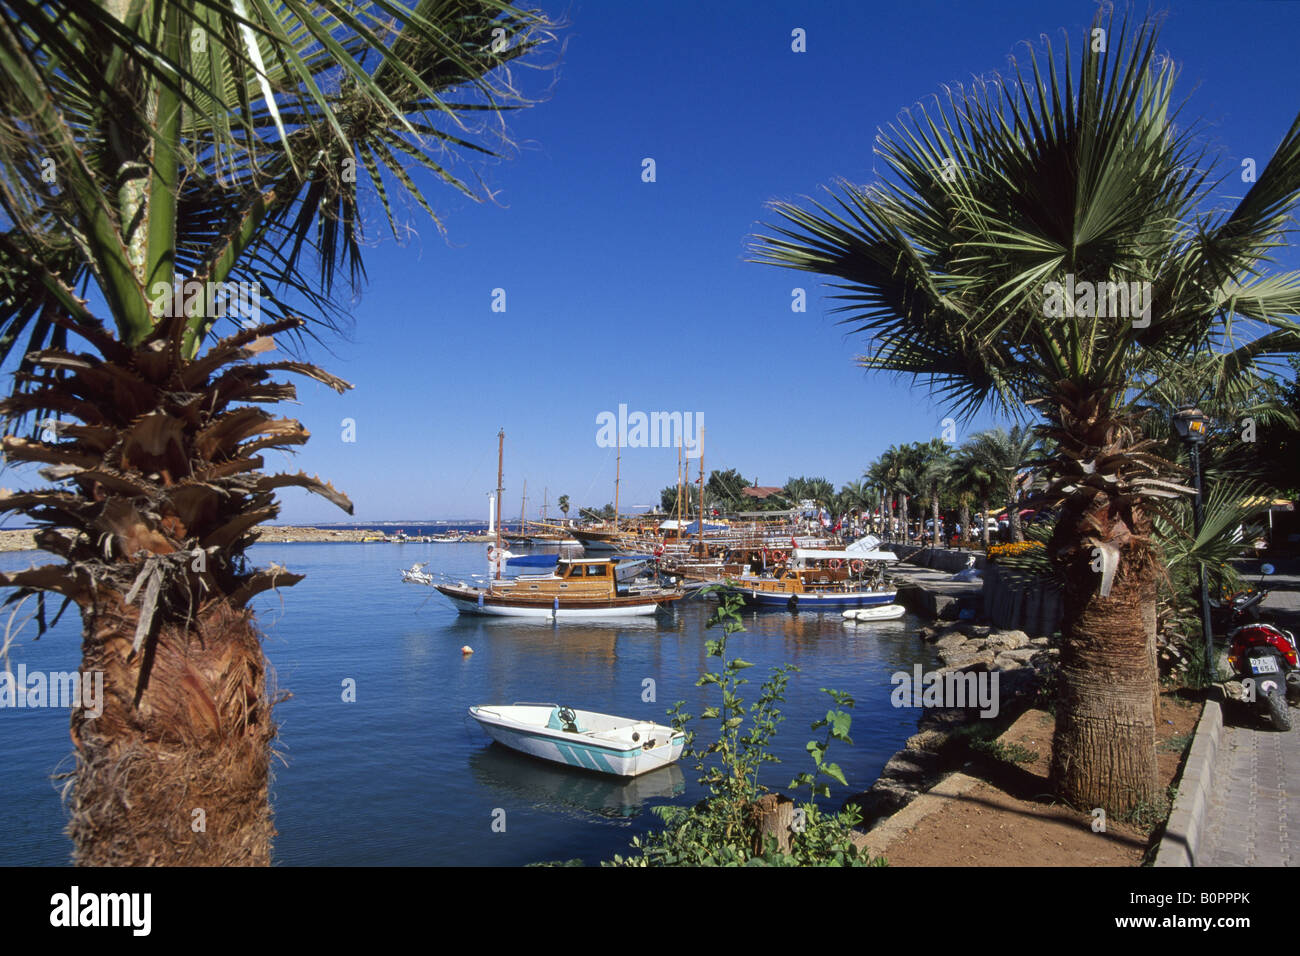 Harbour of Side, Turkey - Stock Image